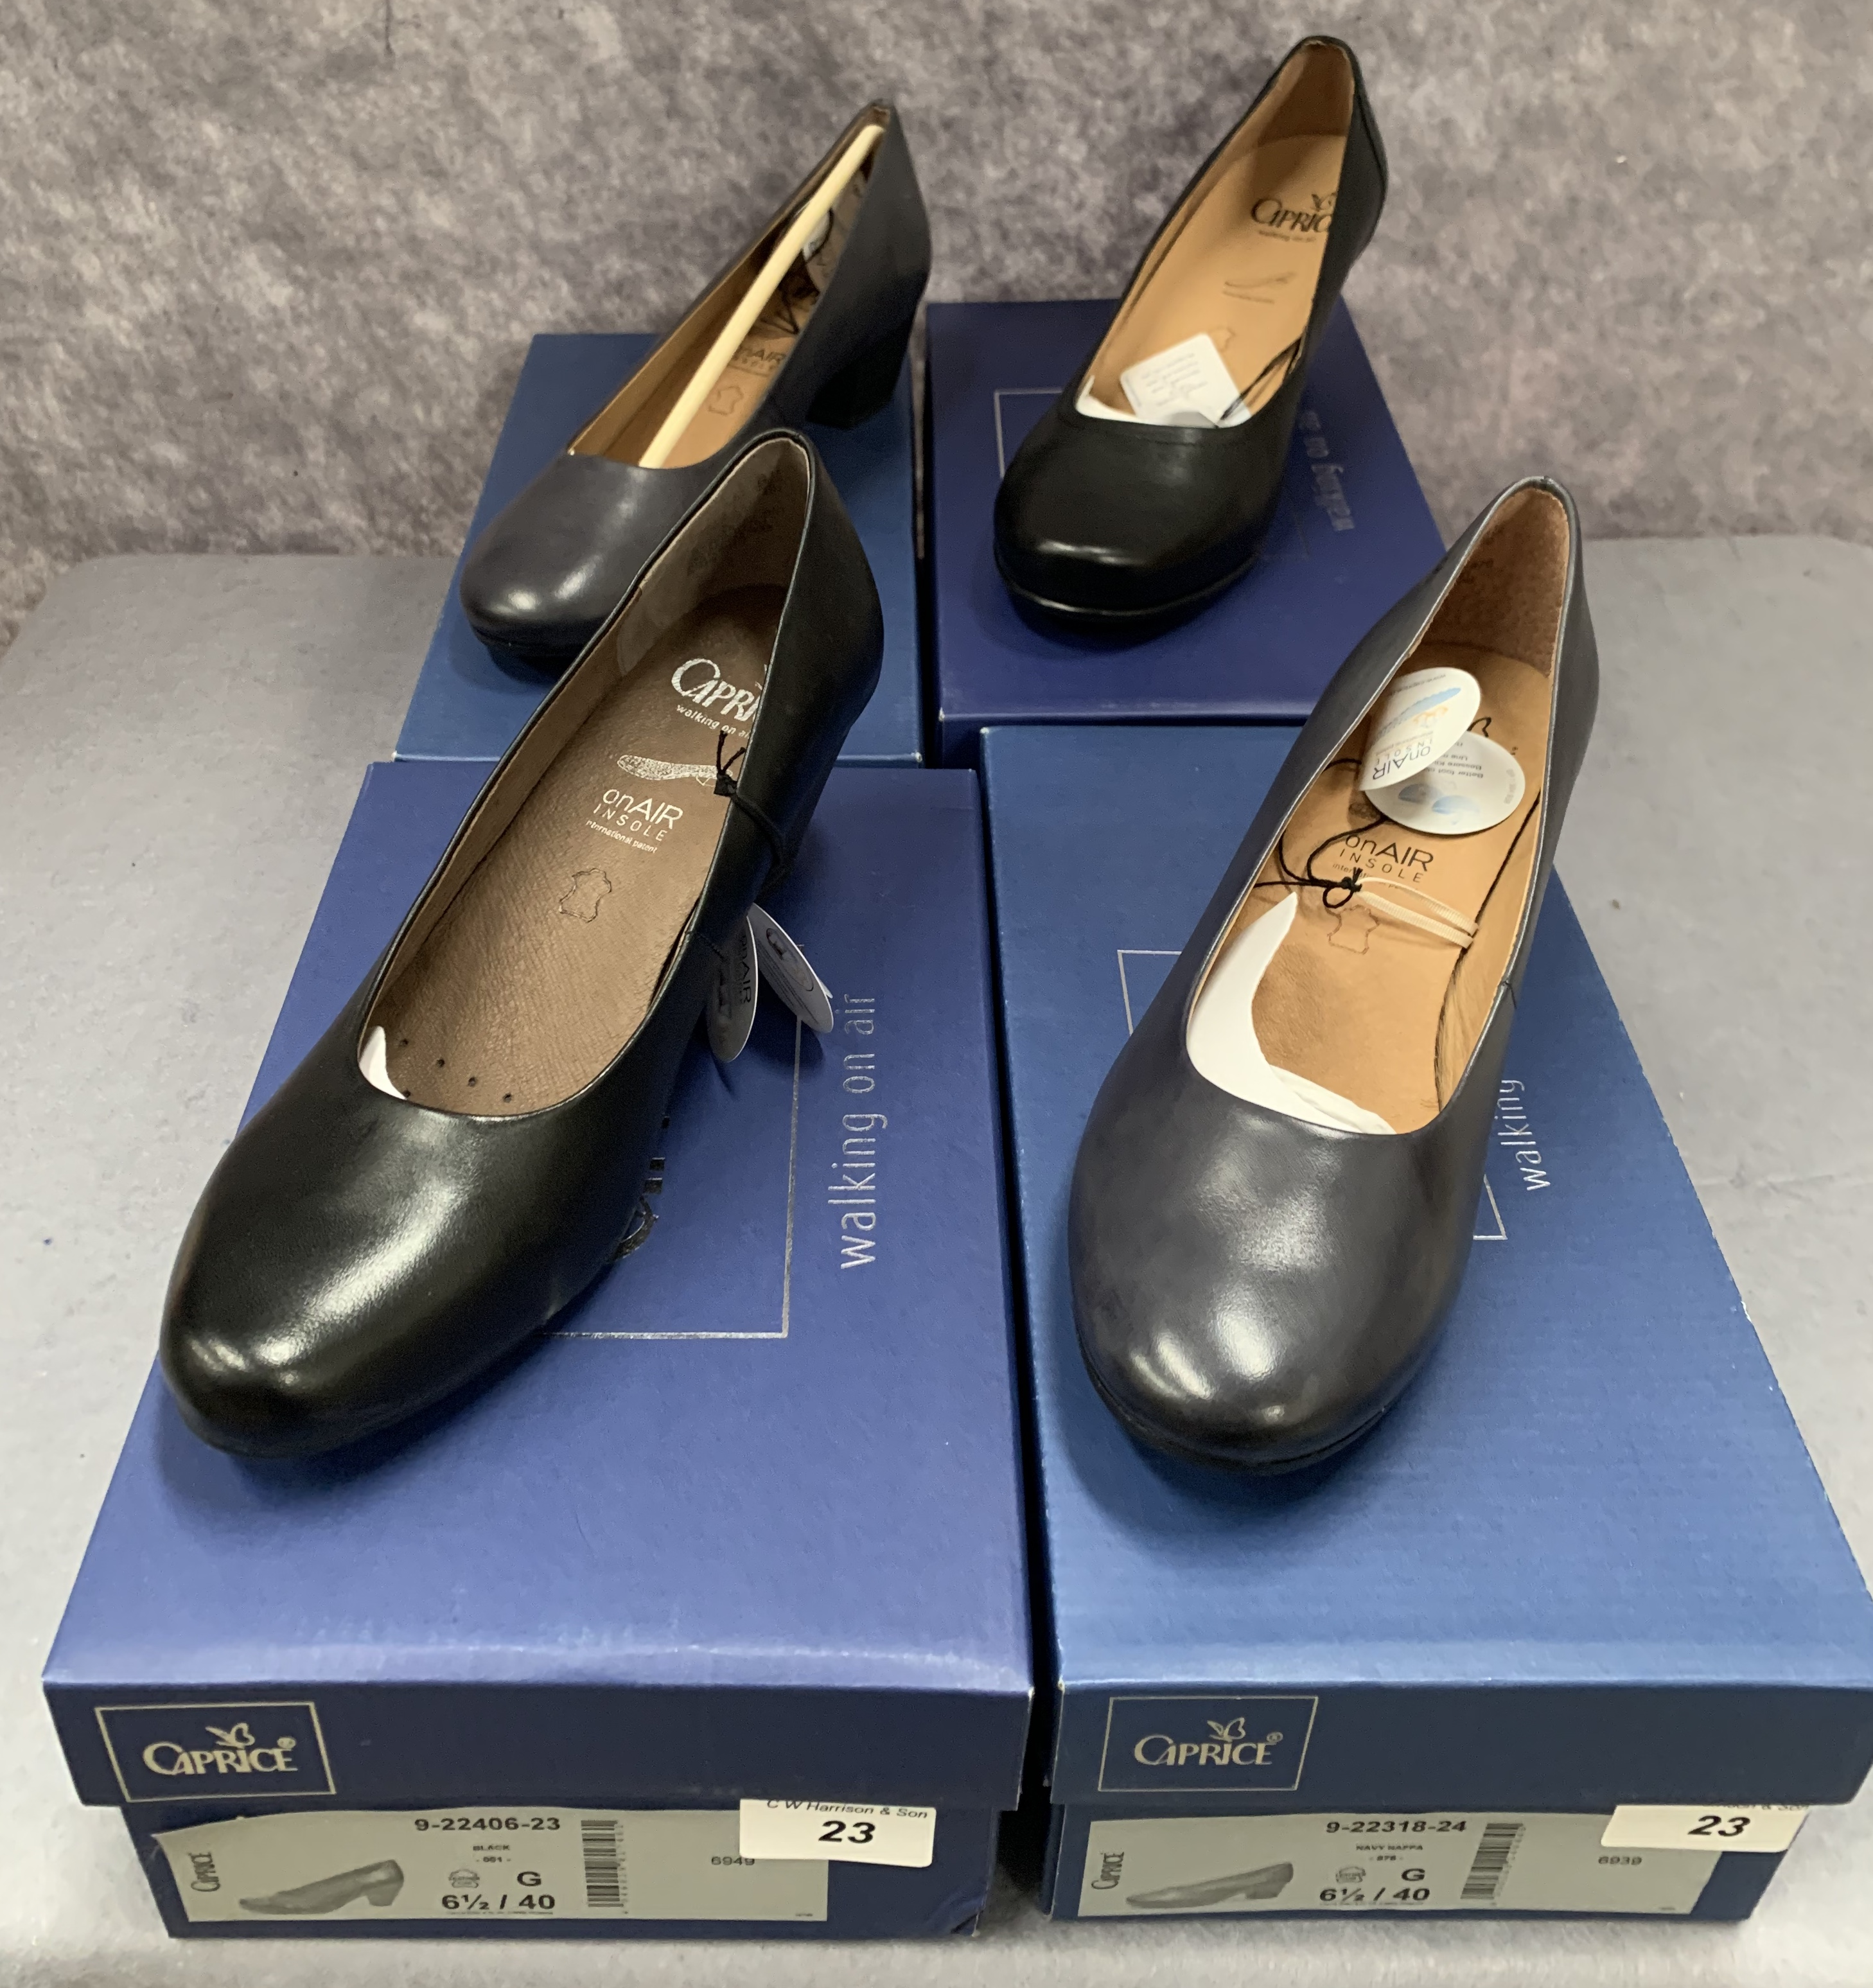 Four pairs of Caprice ladies shoes in black (2) and ocean (2), various styles, size 6½,